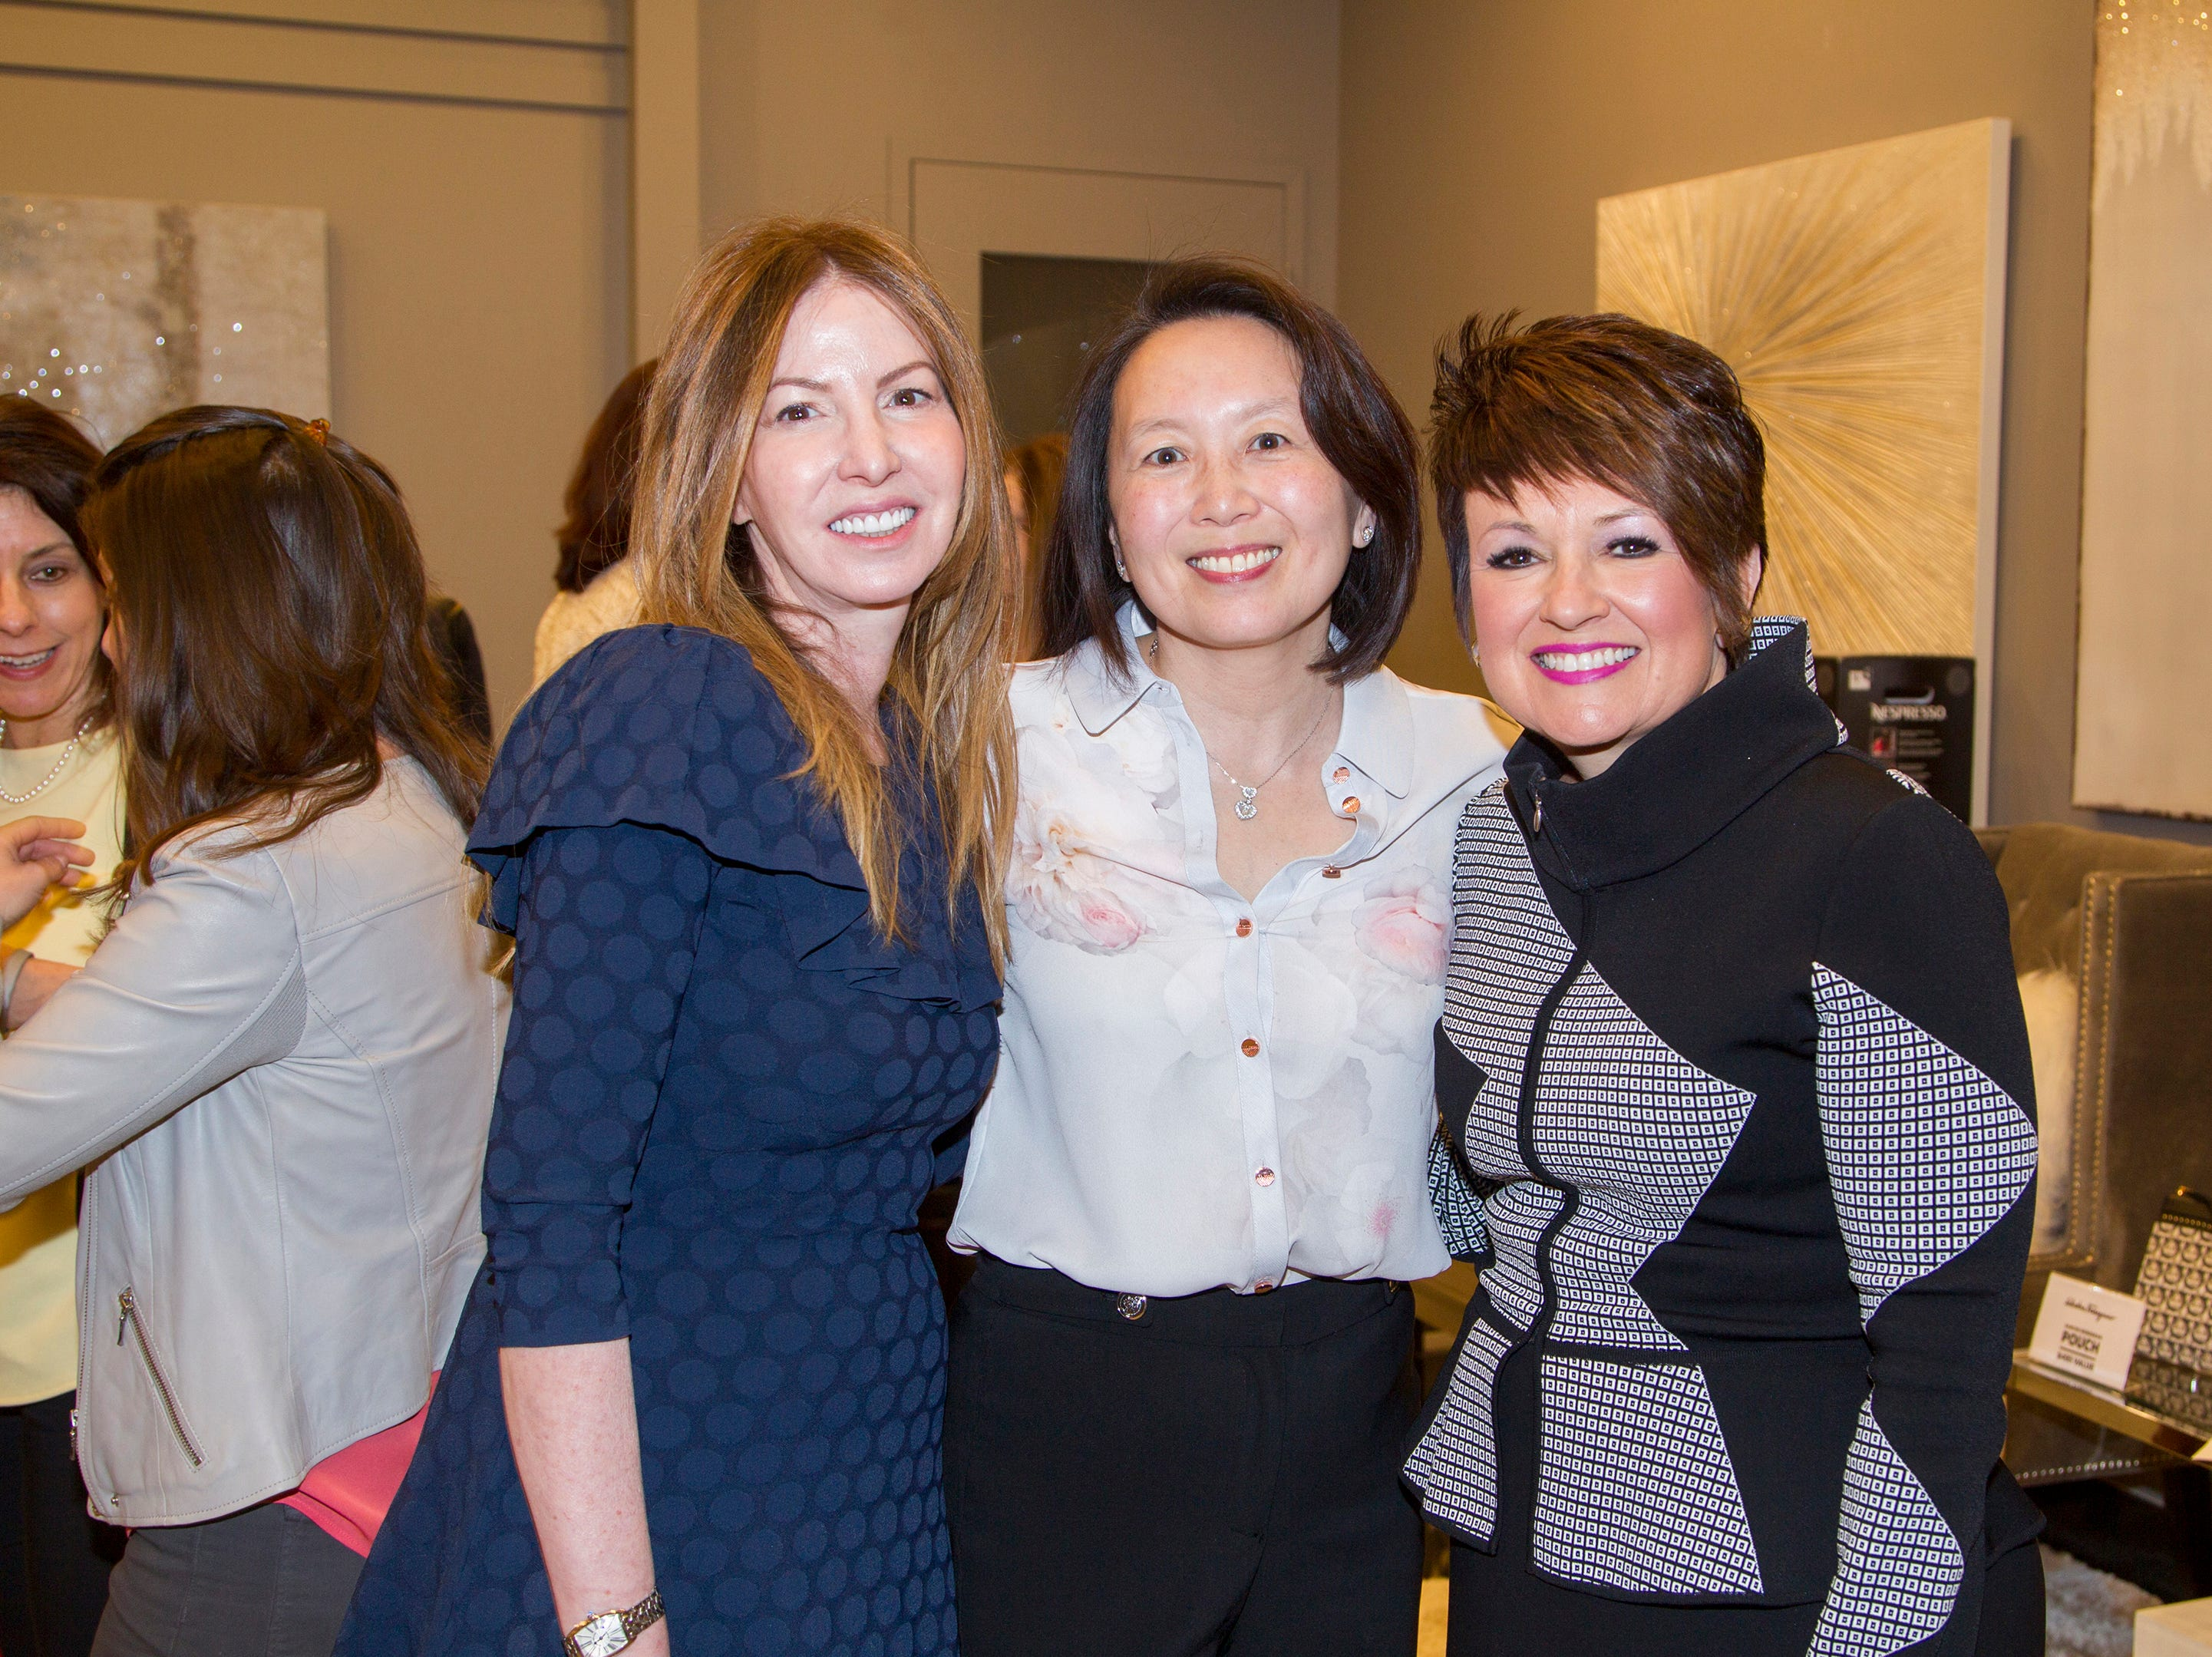 Paula Hian, Jean Holden, Nancy Bush. Westfield Garden State Plaza held its Meet the Artist & Trend Show benefitting The Valley Hospital Auxillary Saddle River Branch. 04/03/2019